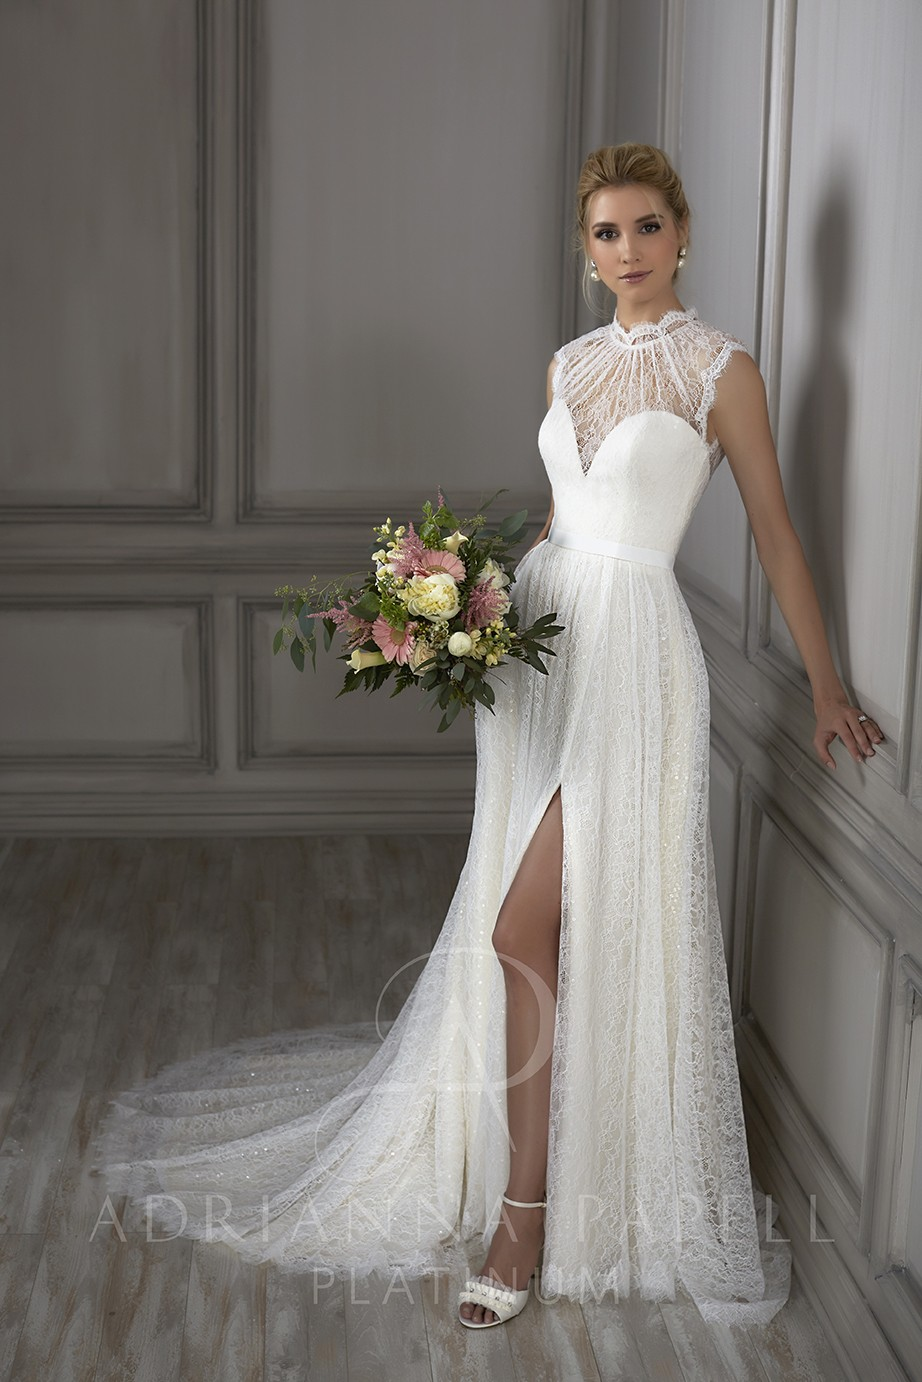 Adrianna Papell 31074 Juliet Dress - MadameBridal.com